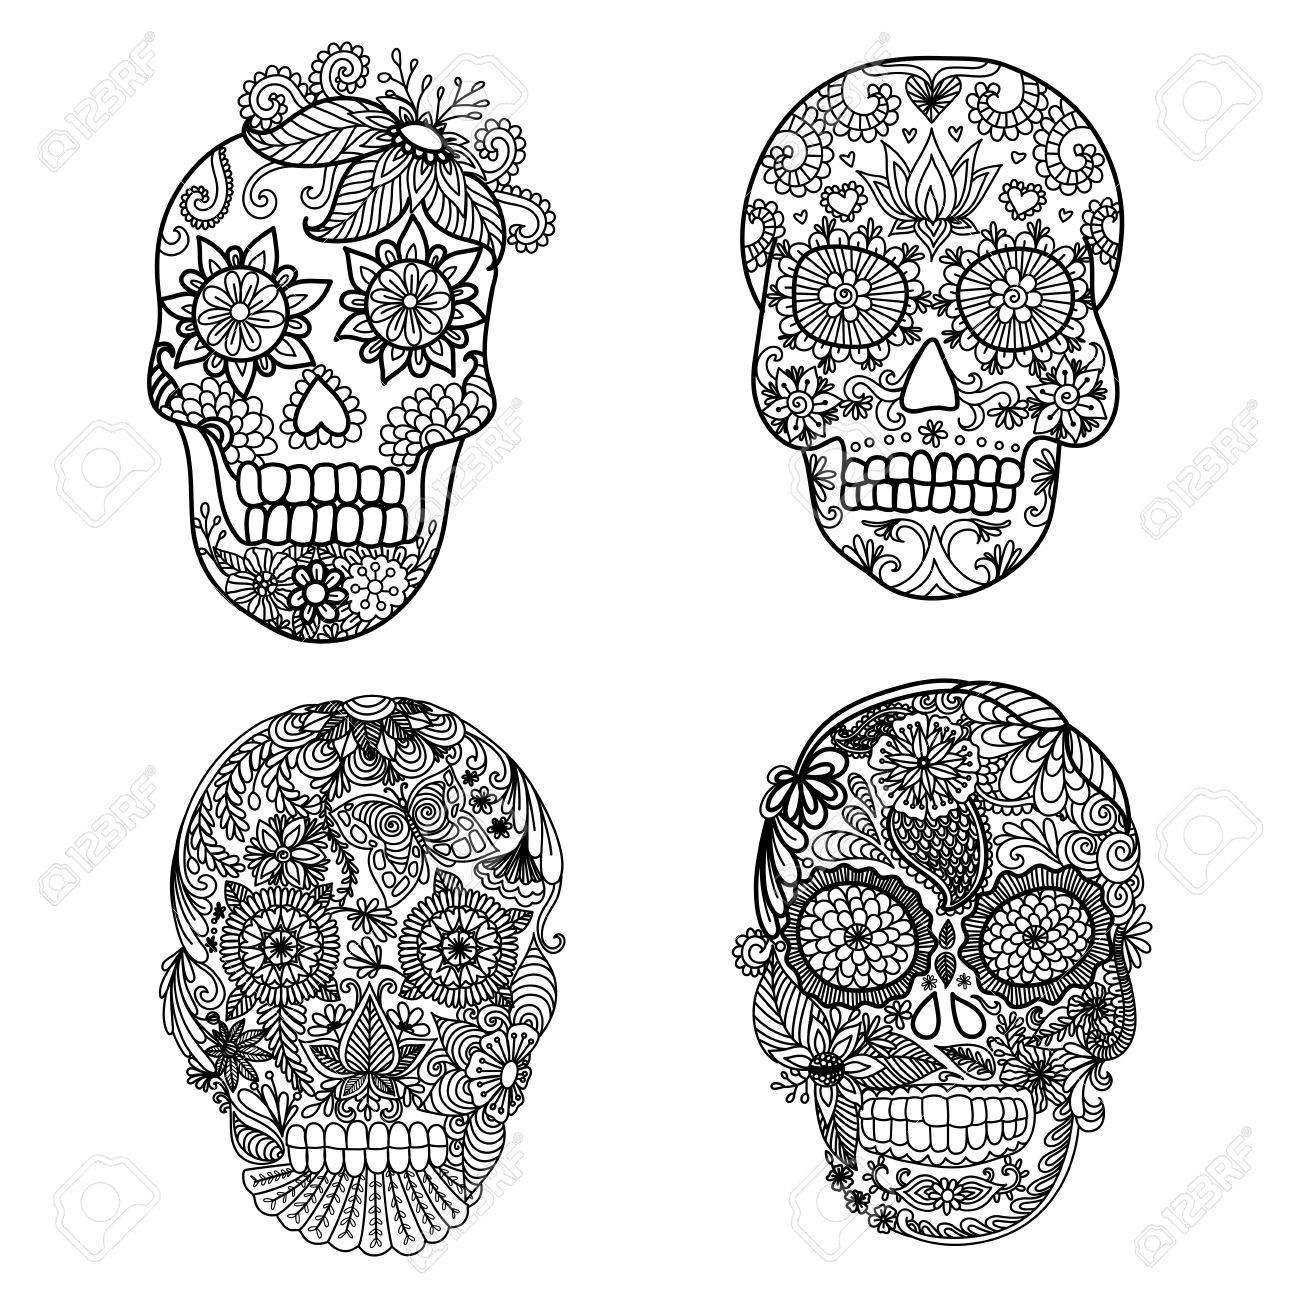 - Lines Art Design Of Unique Skull For Adult Coloring Pages,tattoo